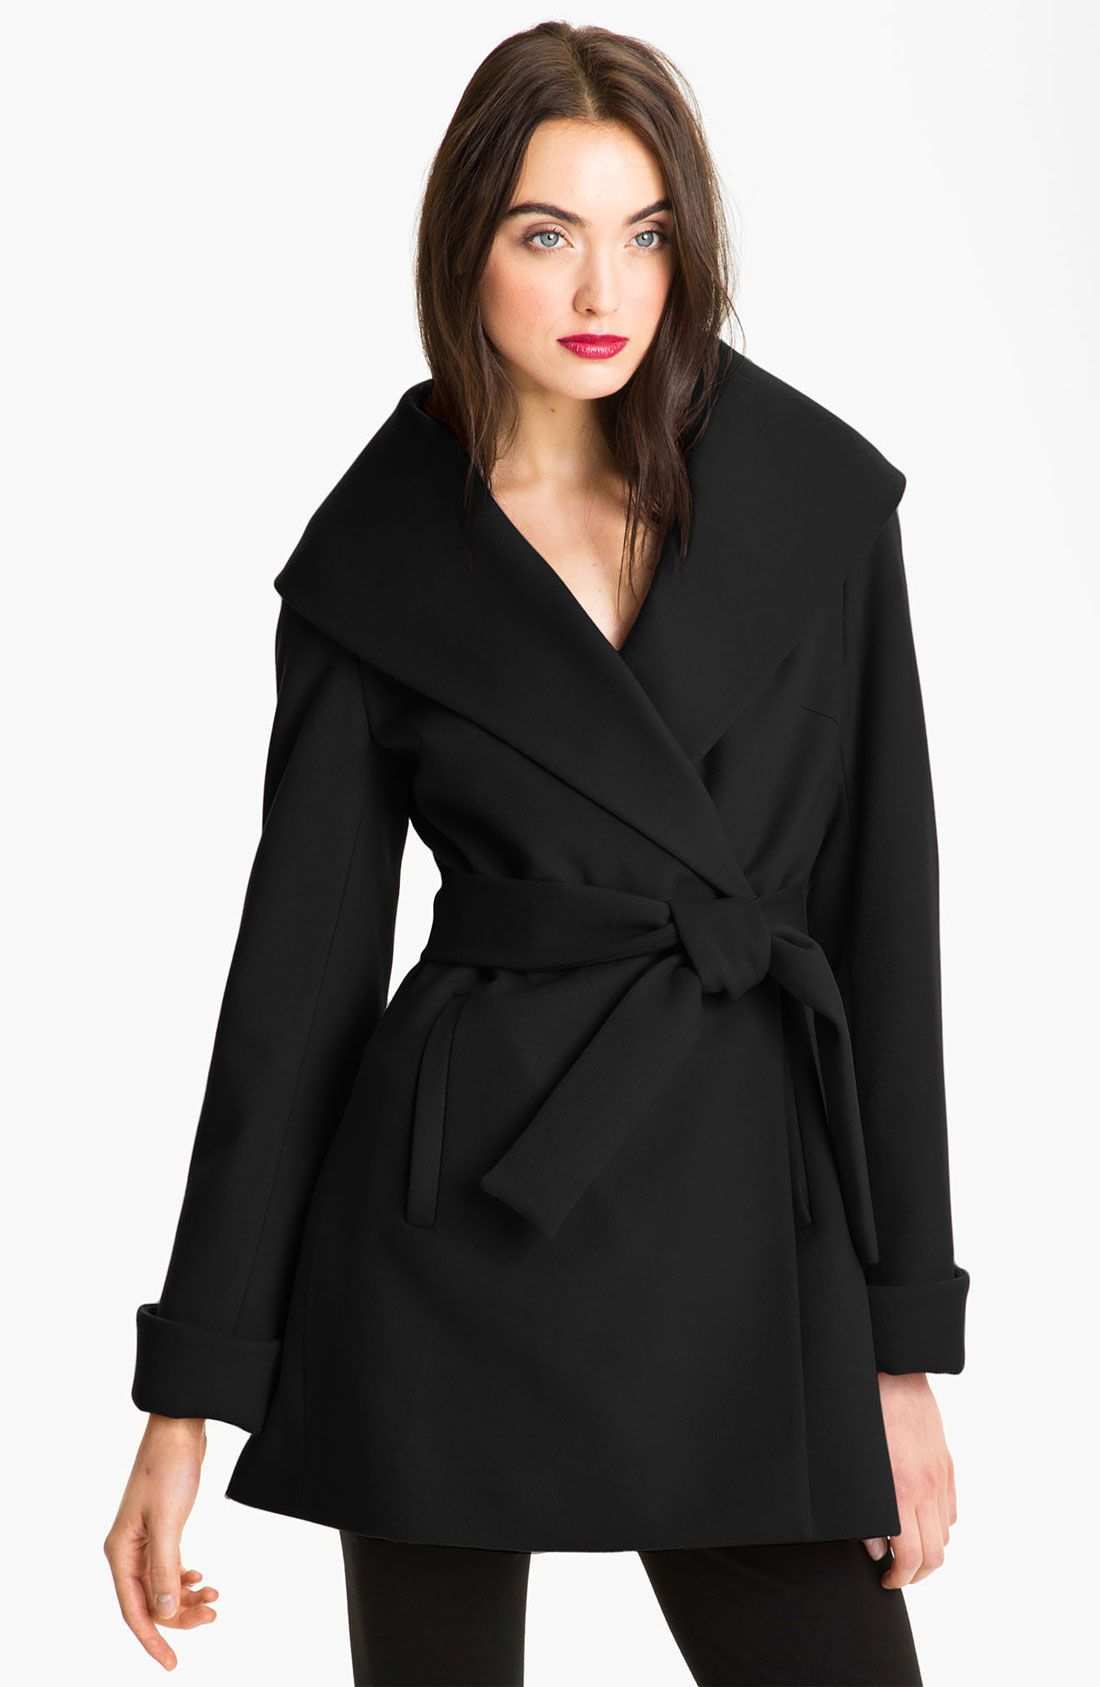 Trina Turk Belted Wrap Coat in Black | Chamarras y abrigos ...